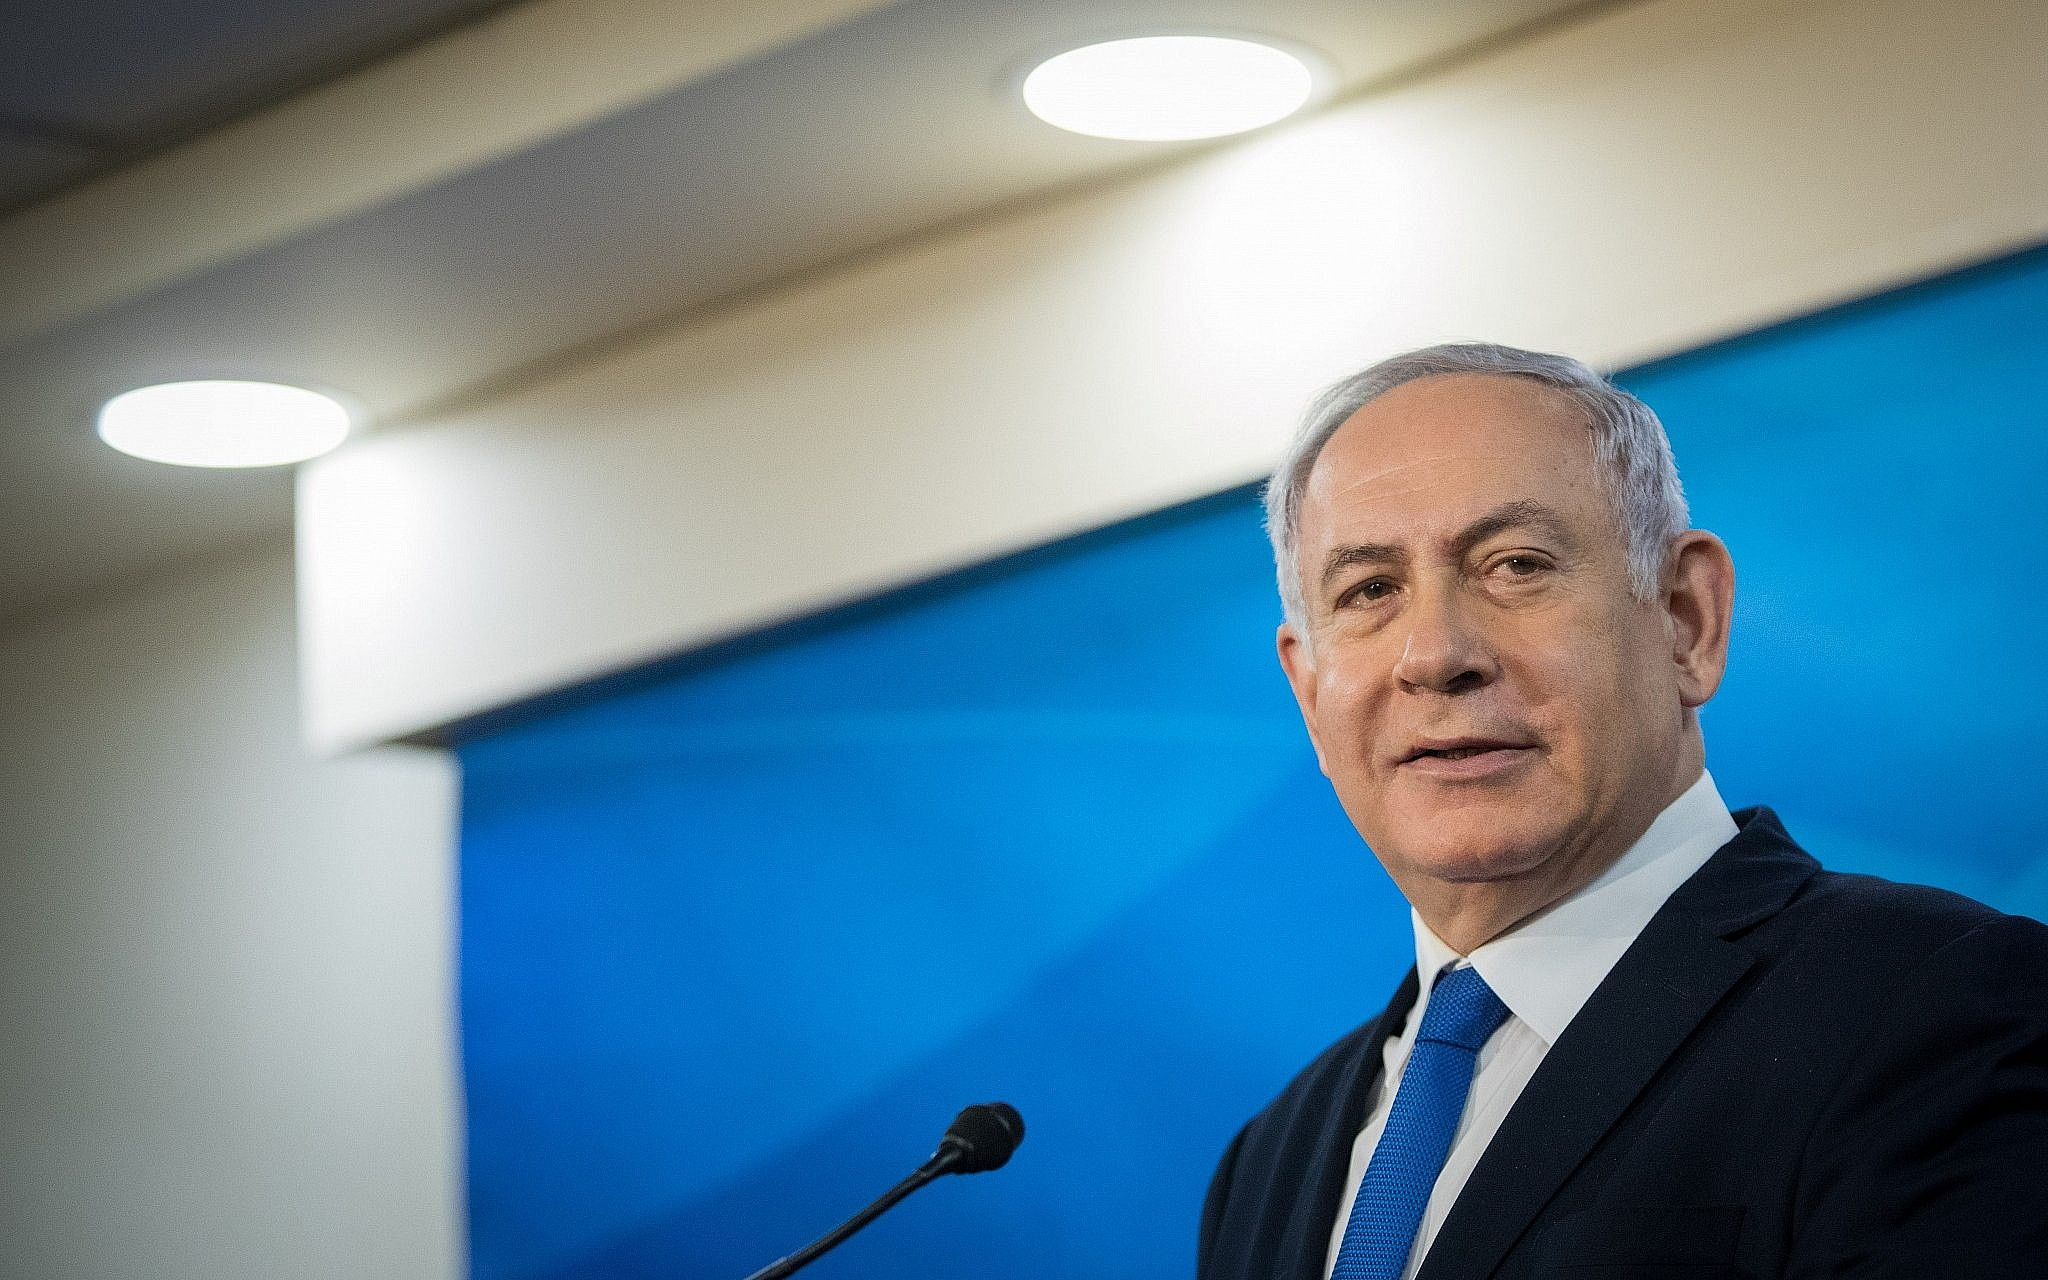 Netanyahu rivals form alliance for Israeli election